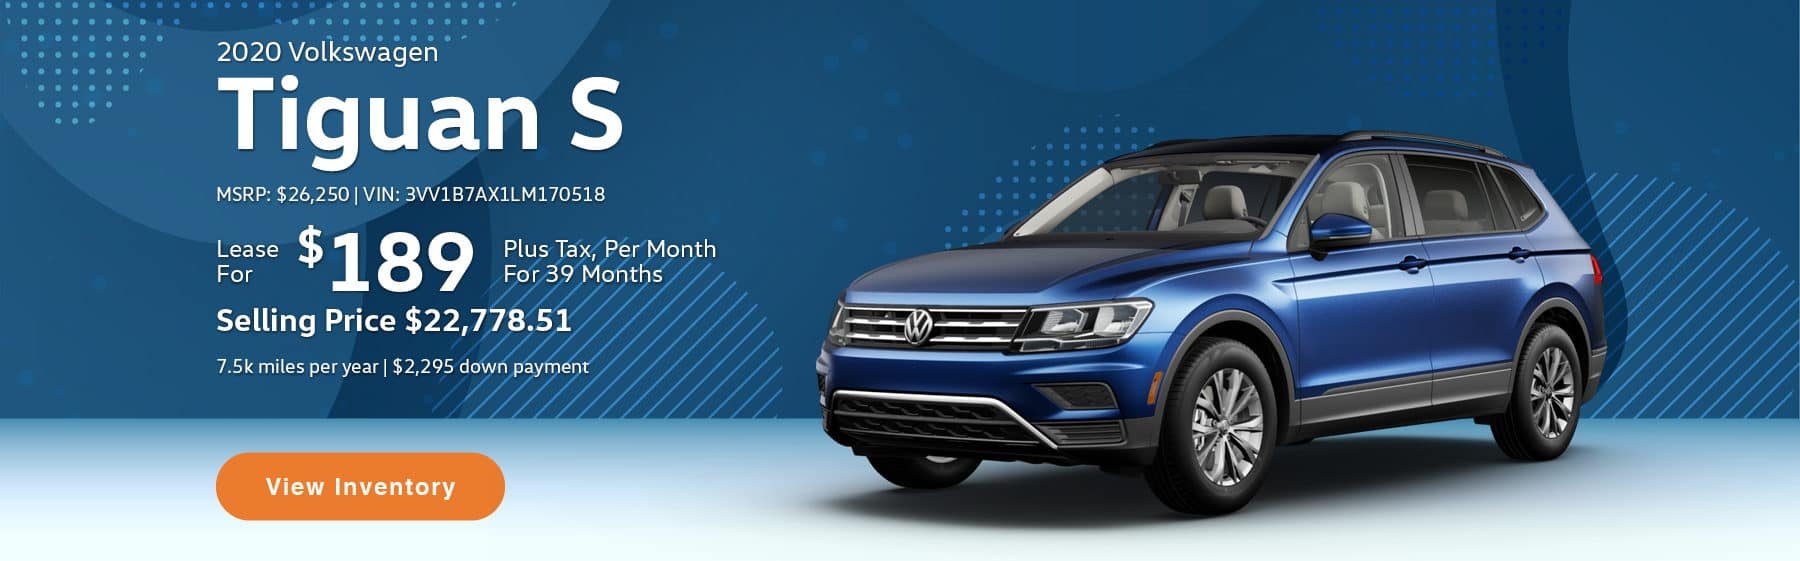 Lease the 2020 Tiguan S for $189 per month, plus tax for 39 months.